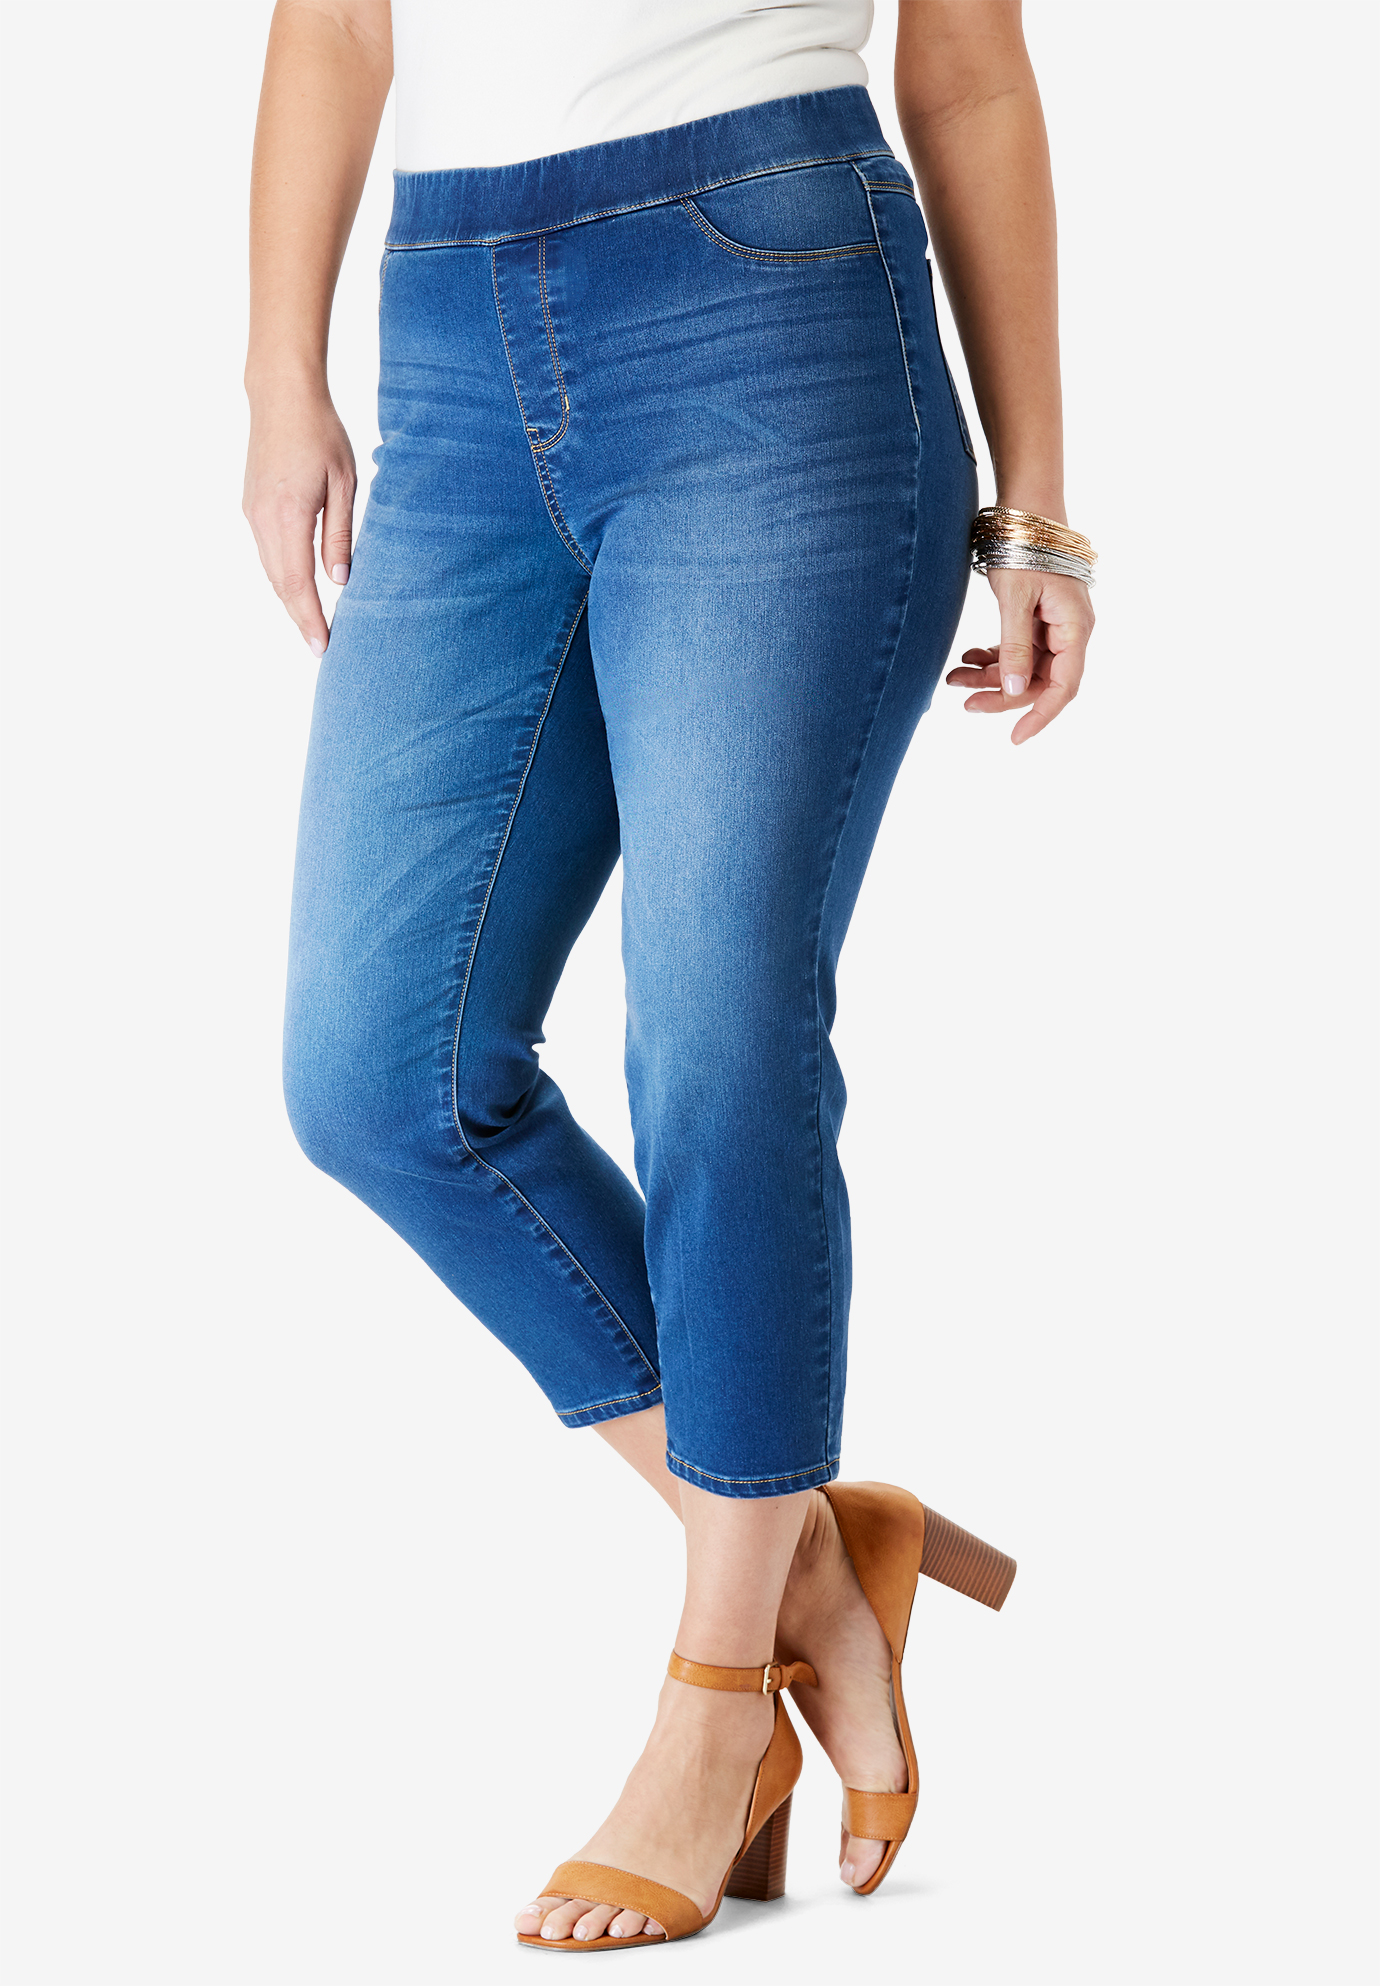 The No-Gap Capri Jean by Denim 24/7®,